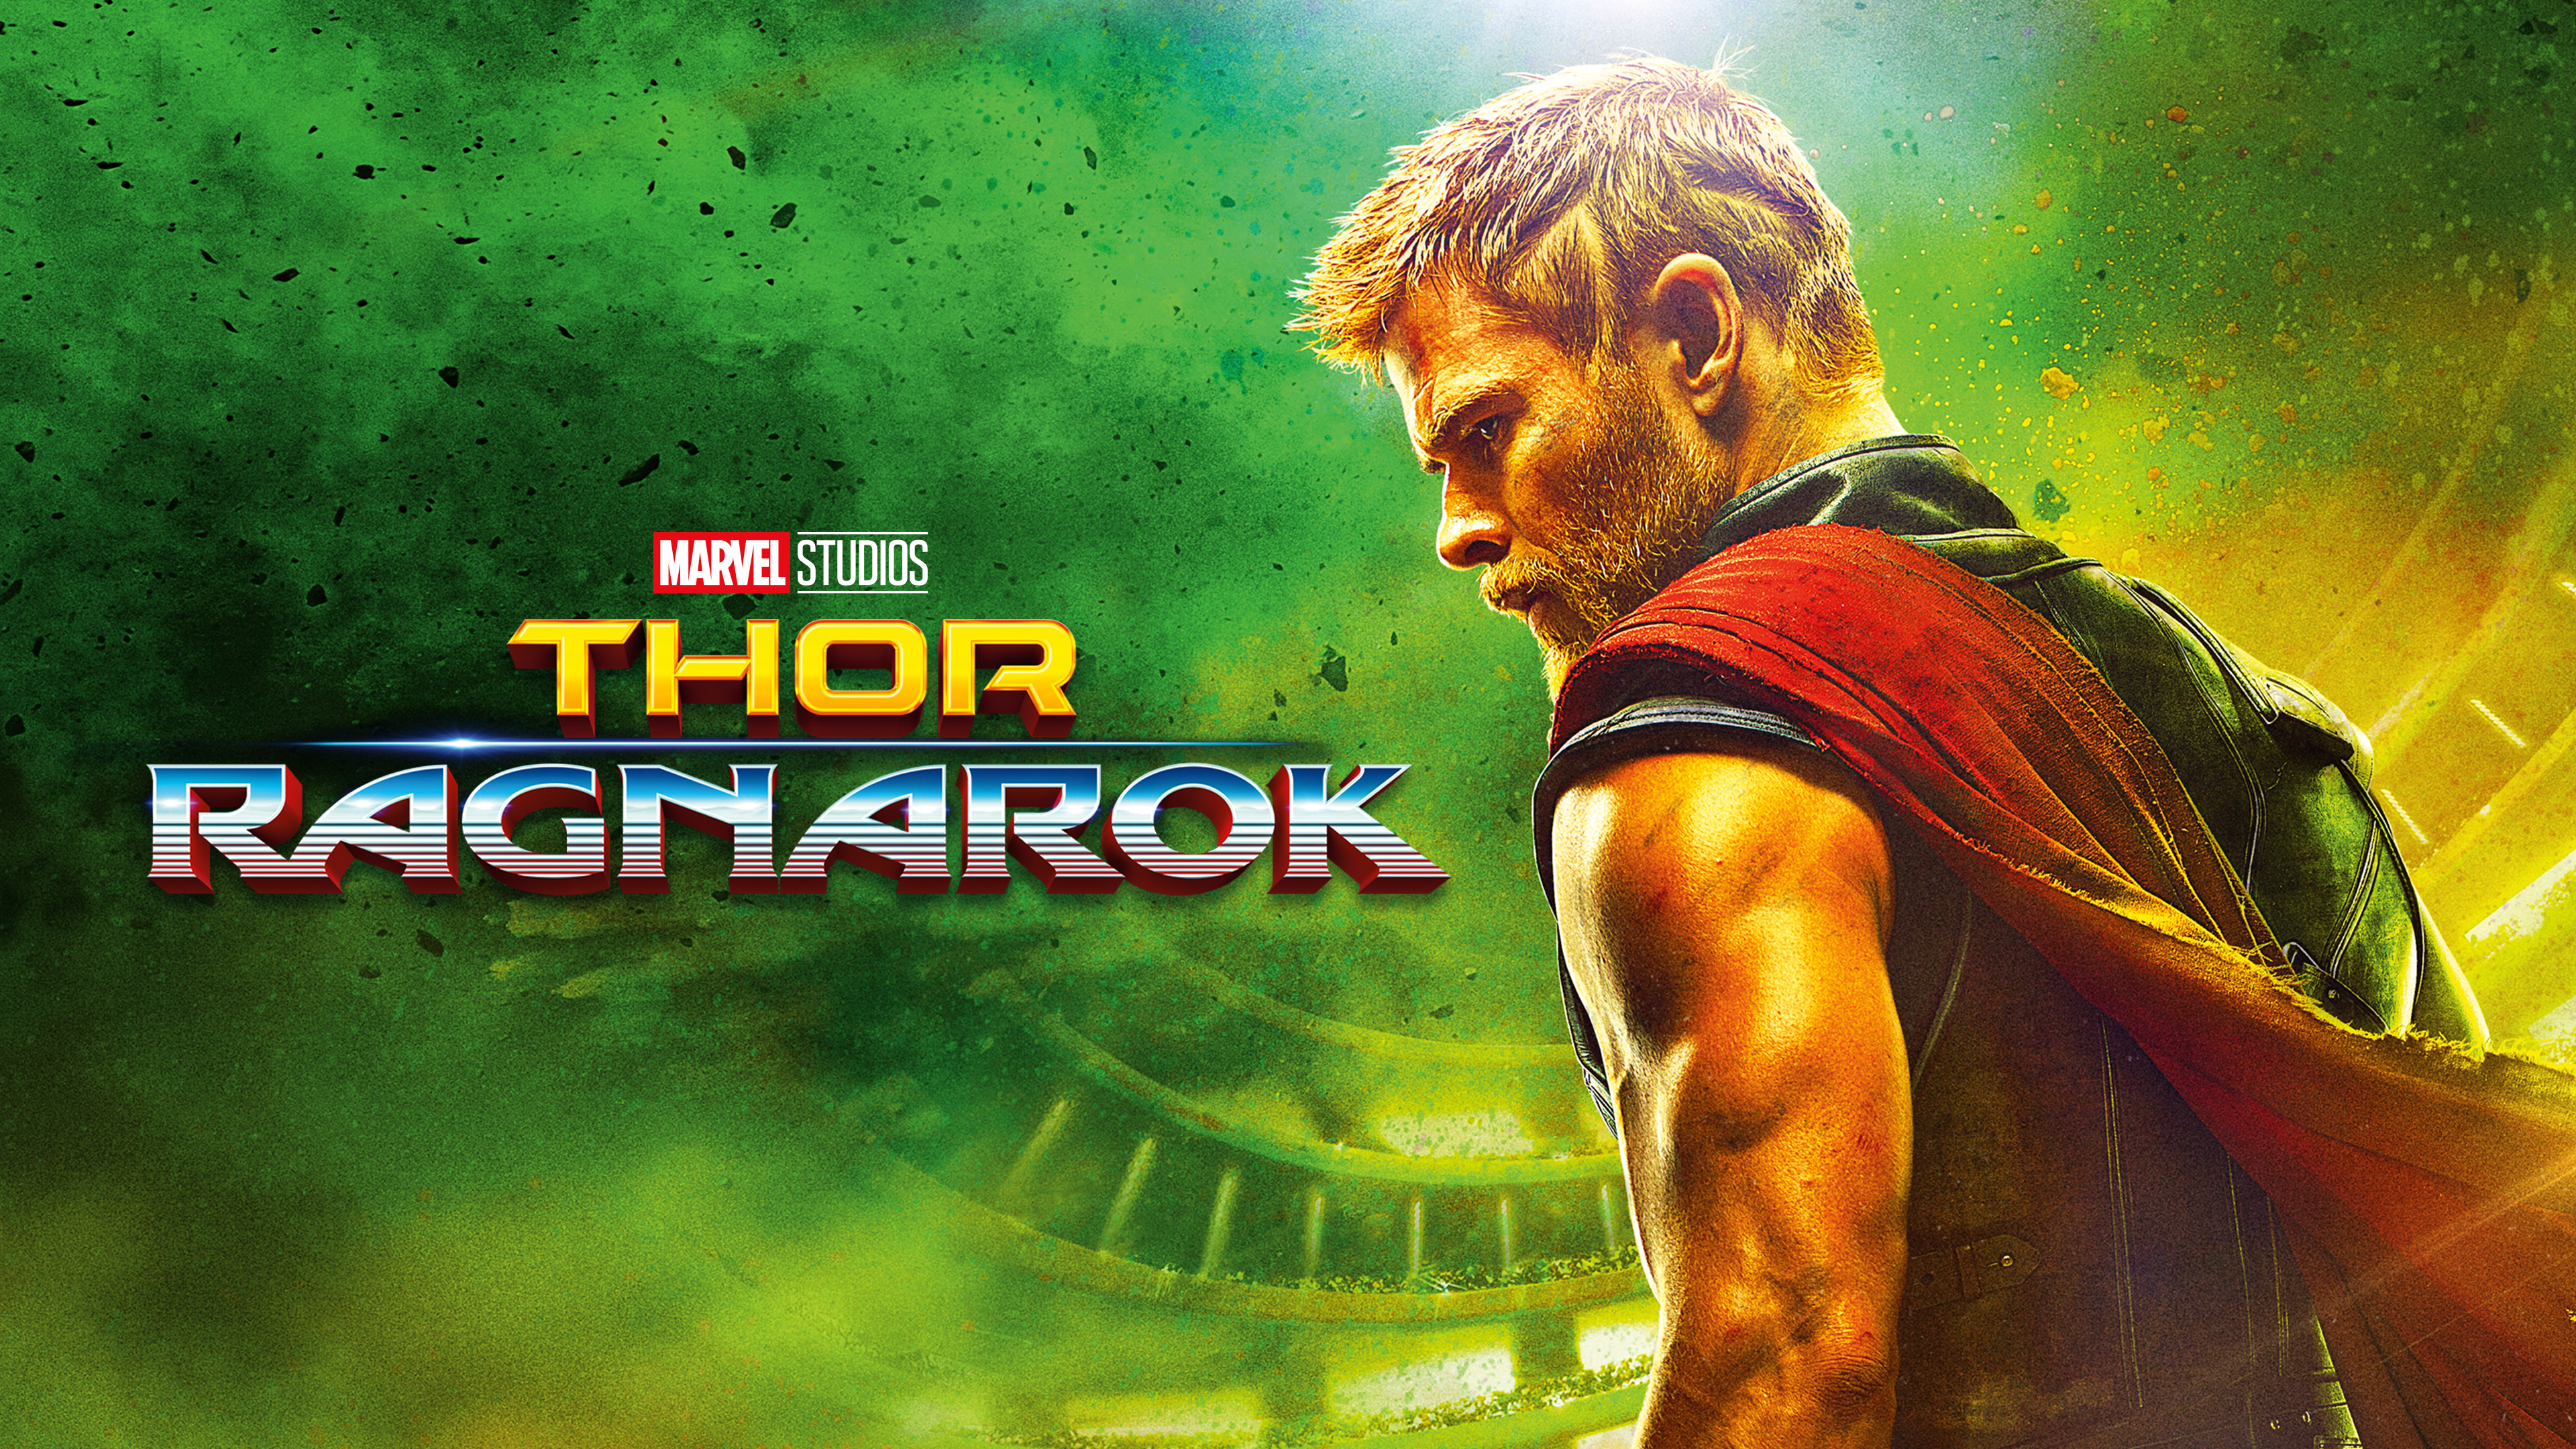 Watch Marvel Studios Thor Ragnarok Full Movie Disney